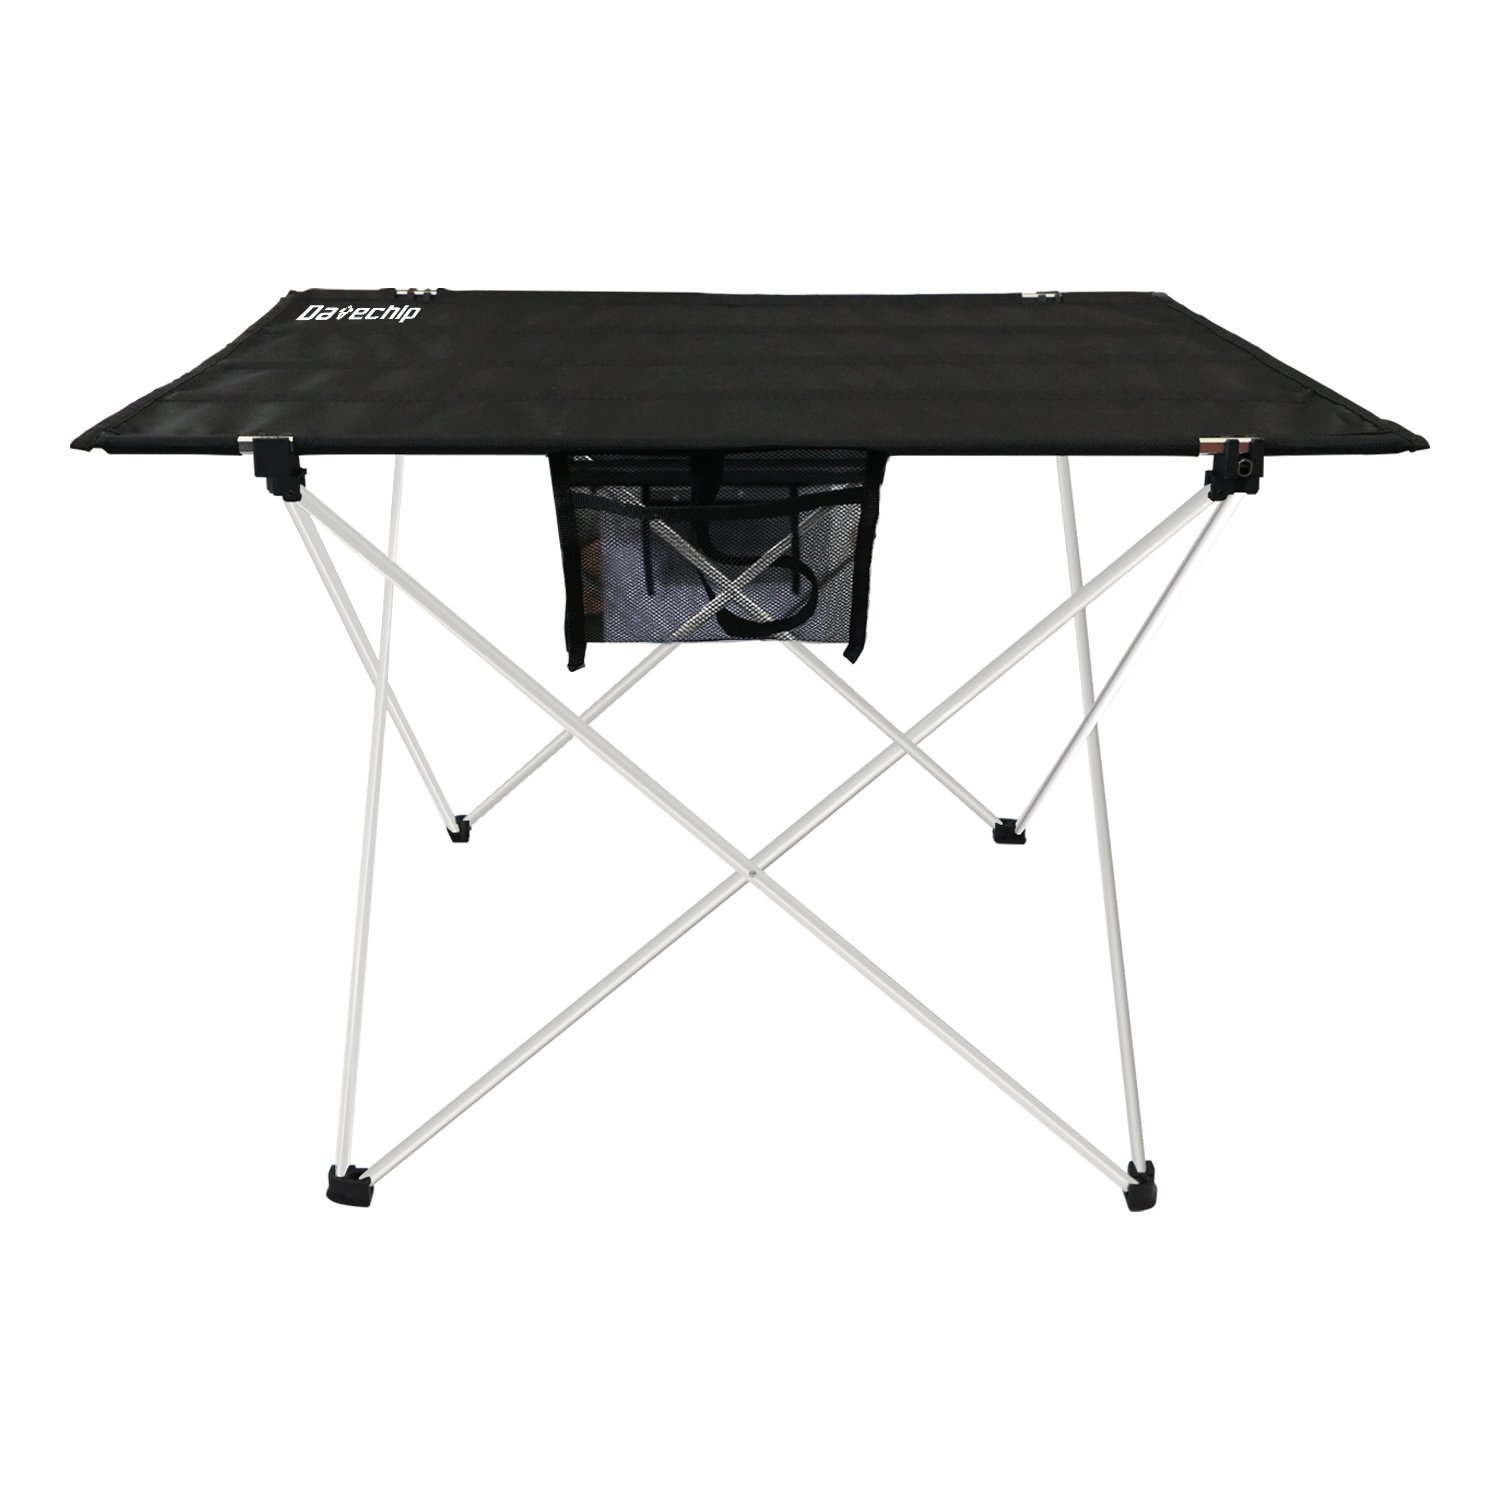 Datechip Portable Folding Camping Table Ultralight Collapsible Travel Table with Table Cover, Aluminum Legs, Lightweight Foldable for Outdoor/Indoor Tent Hiking Picnic Beach Fishing(Black)